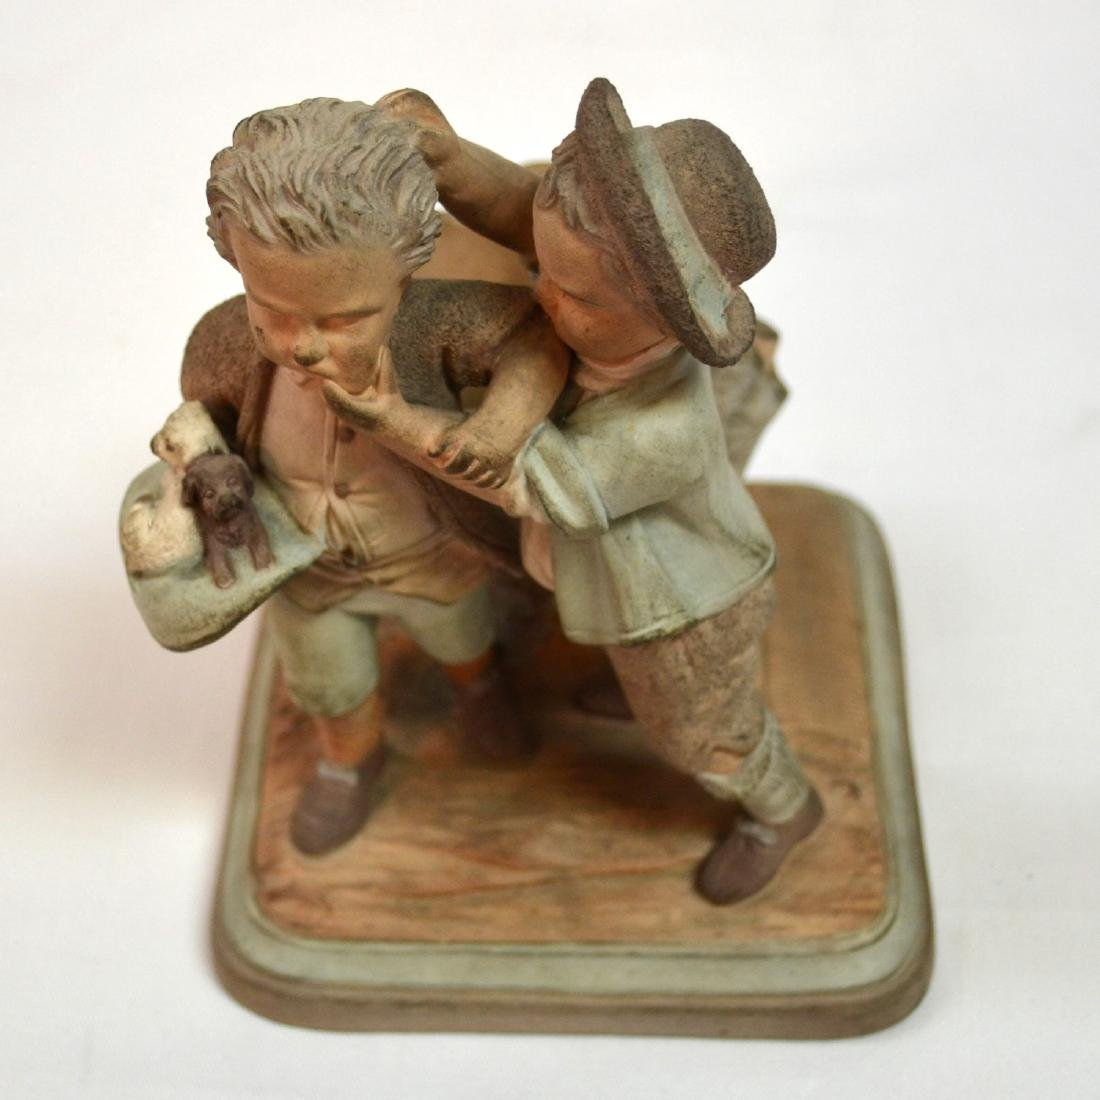 19thc English Terracotta Smoking Stand Two Boys w - 5